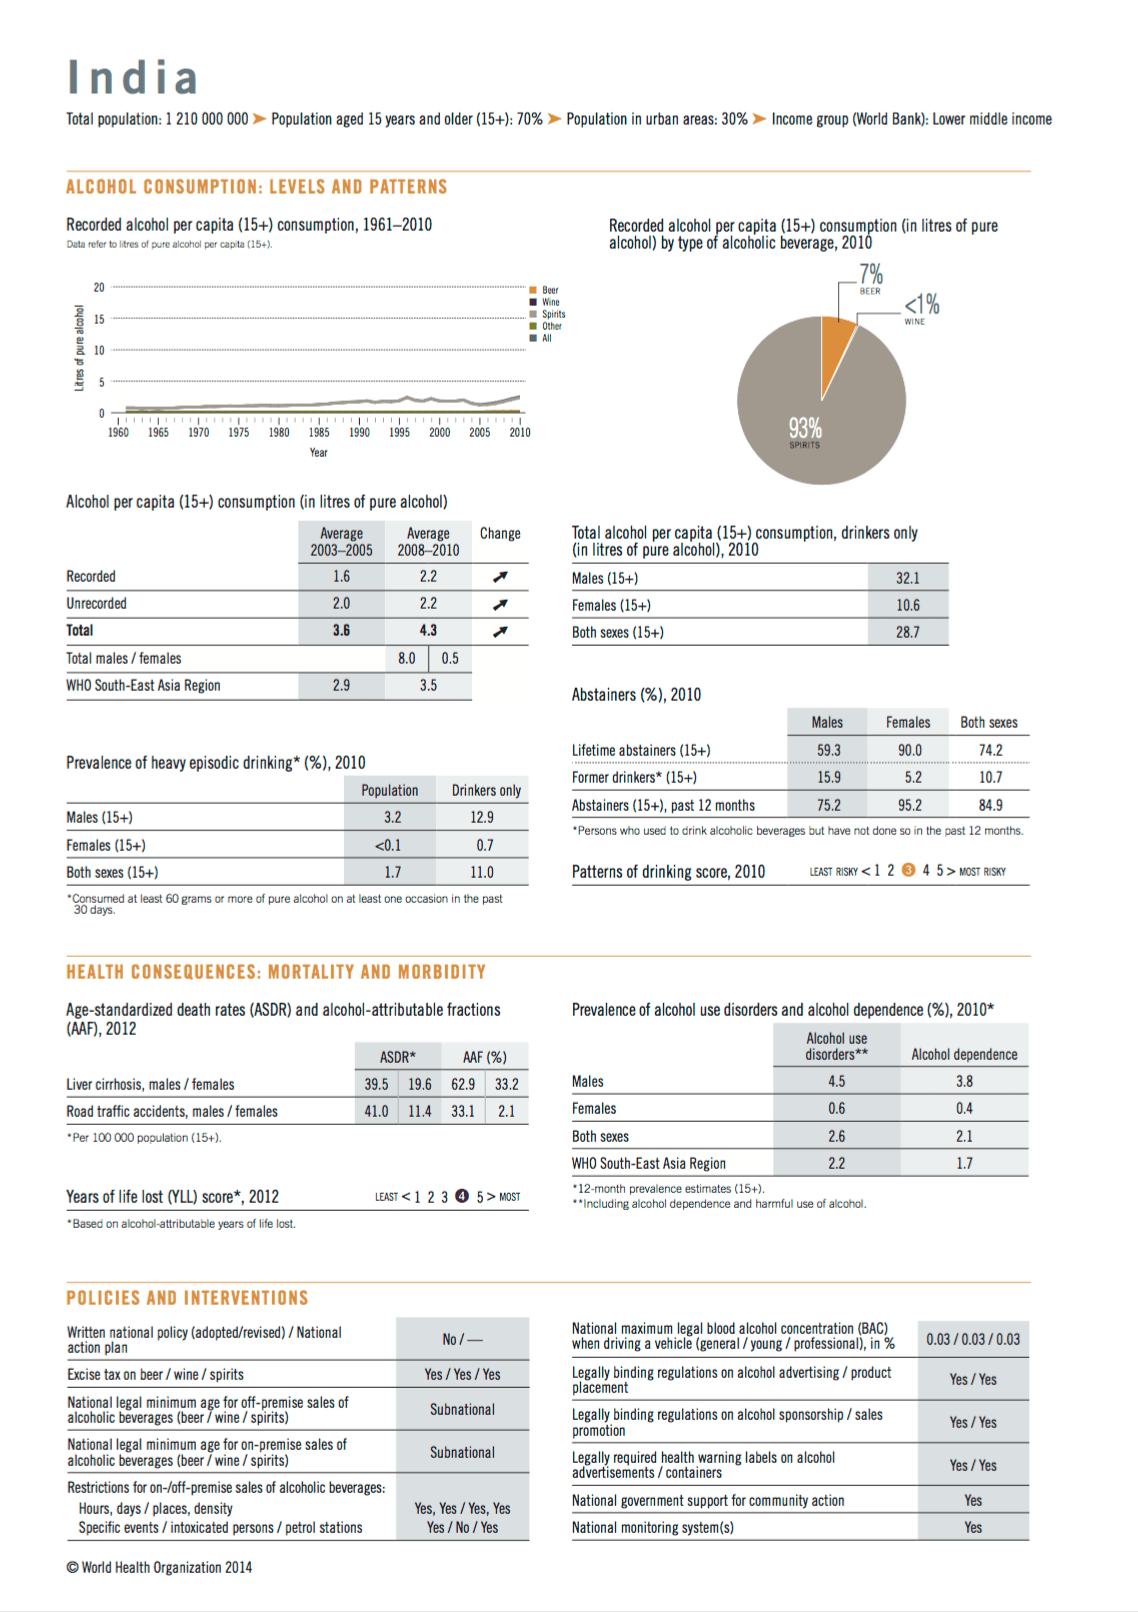 WHO Global Status Report on Alcohol, 2014